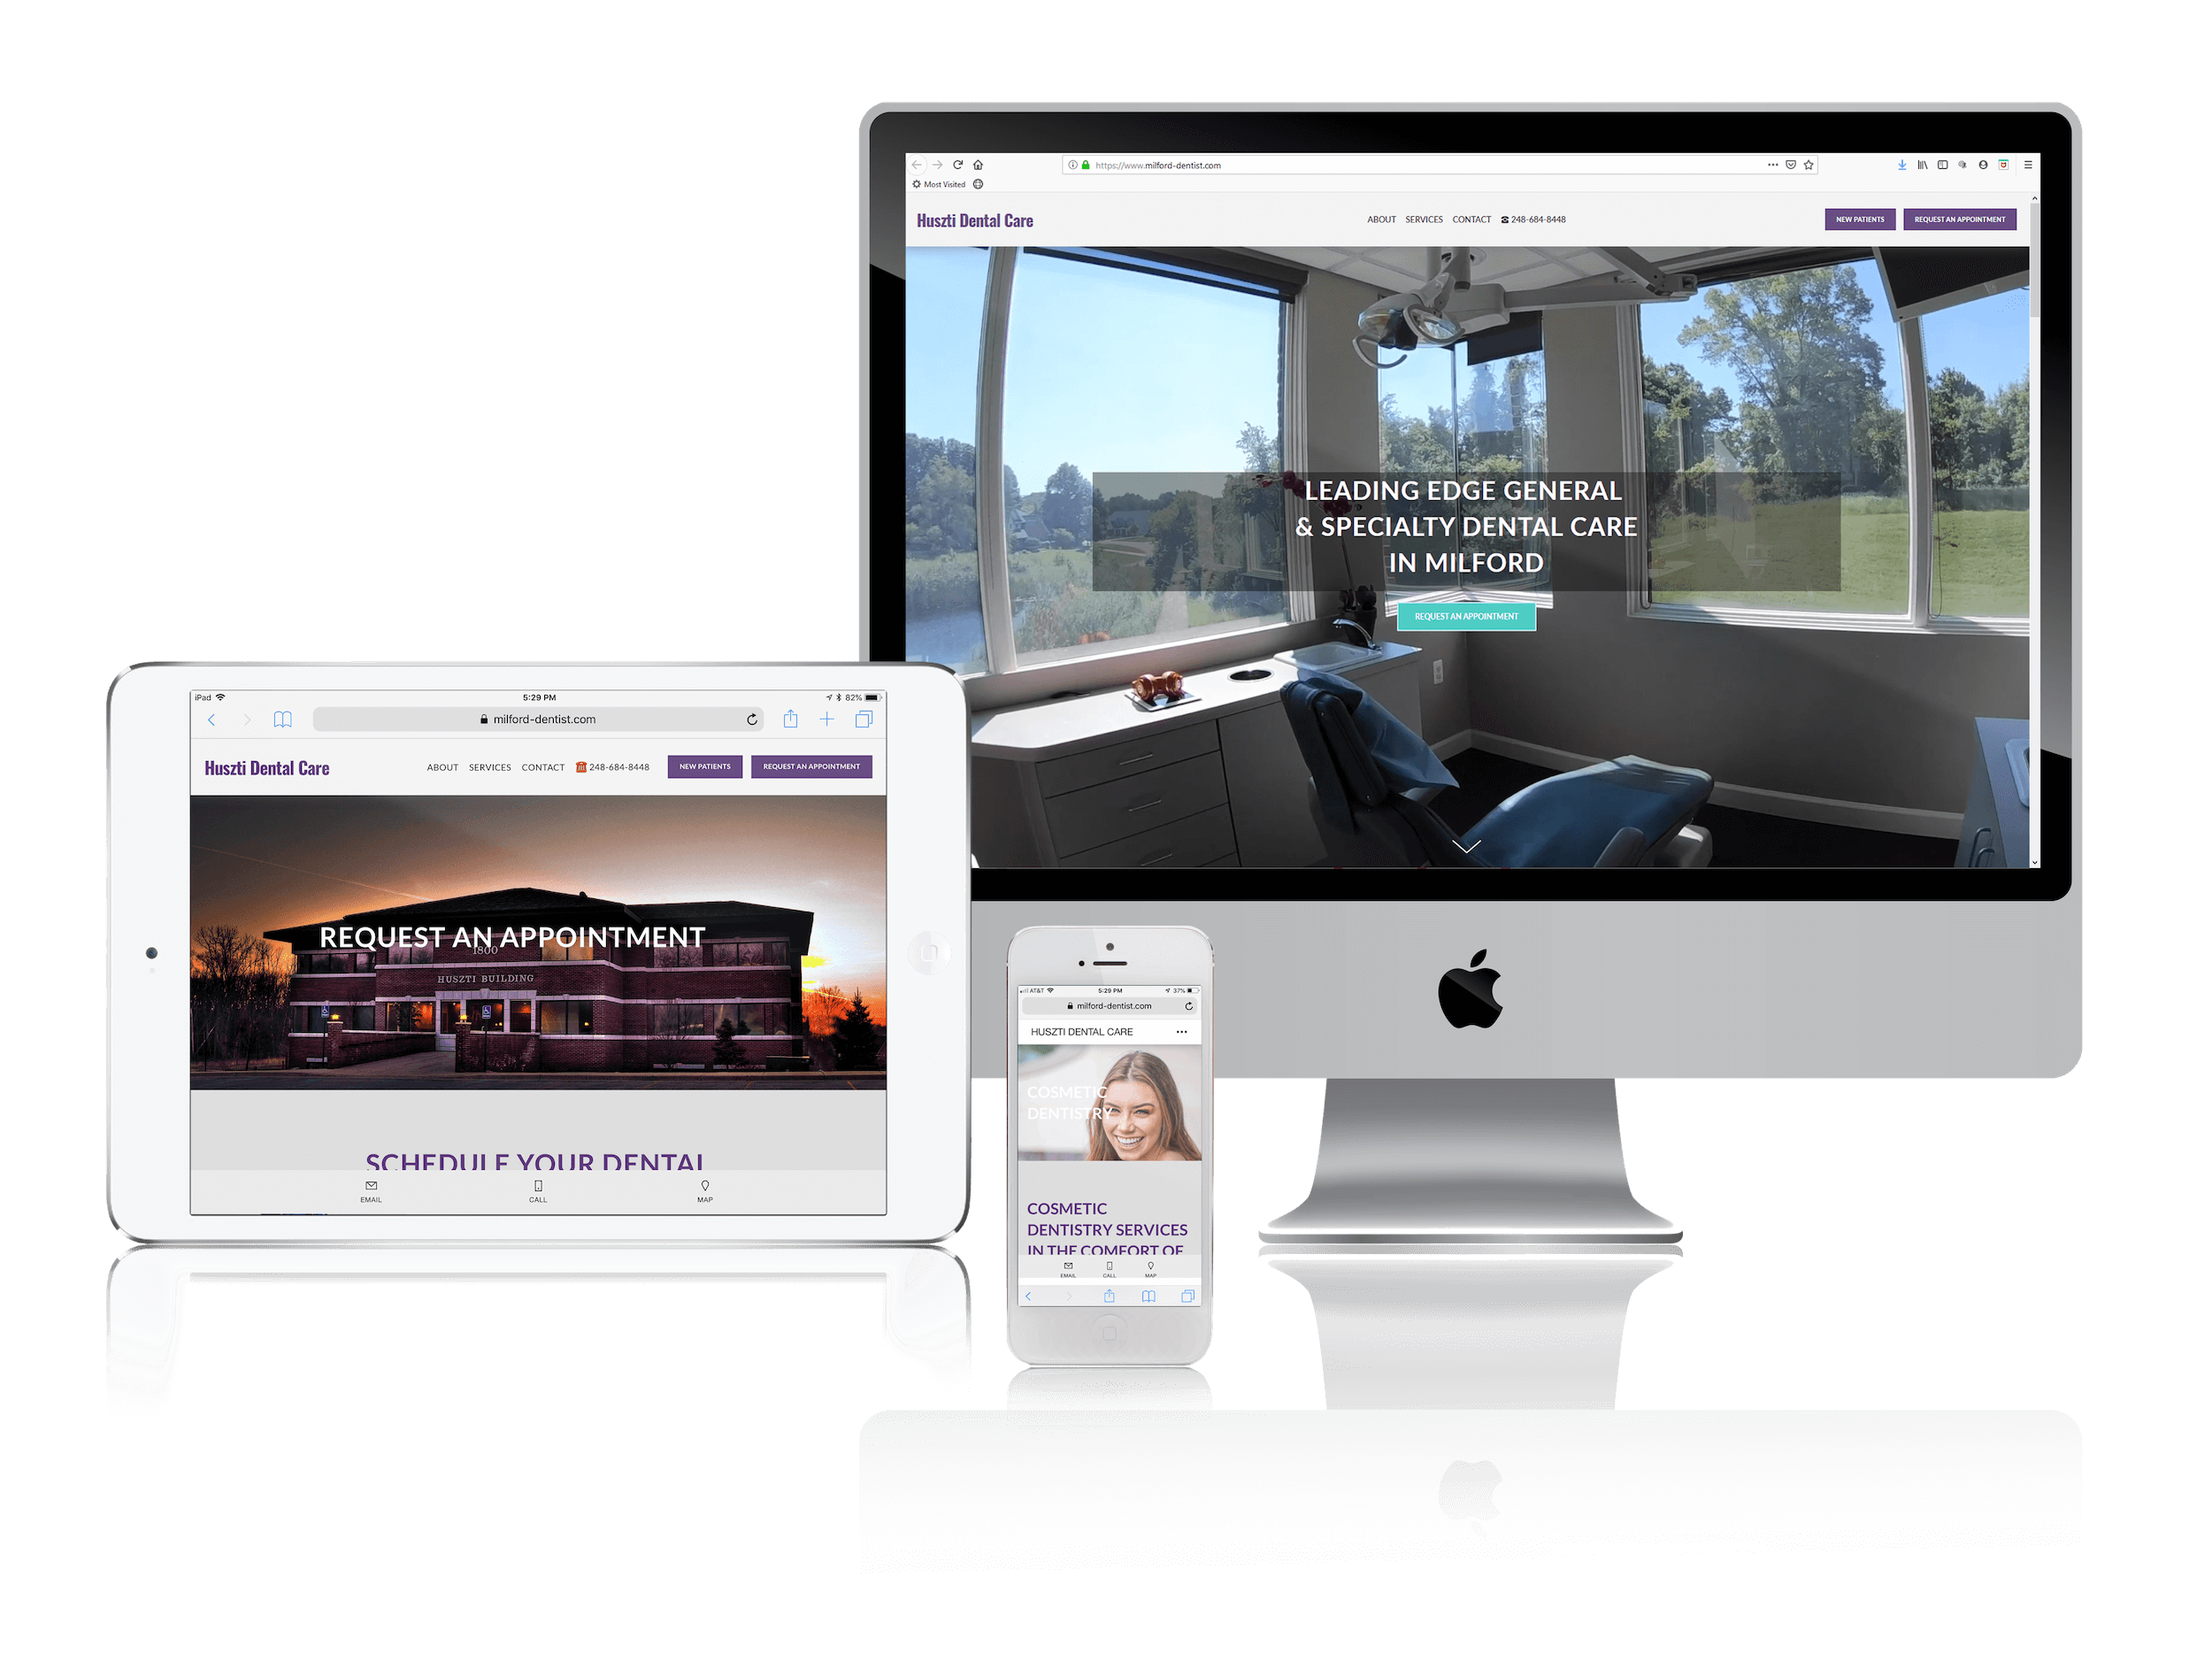 Squarespace Websites for Dentists